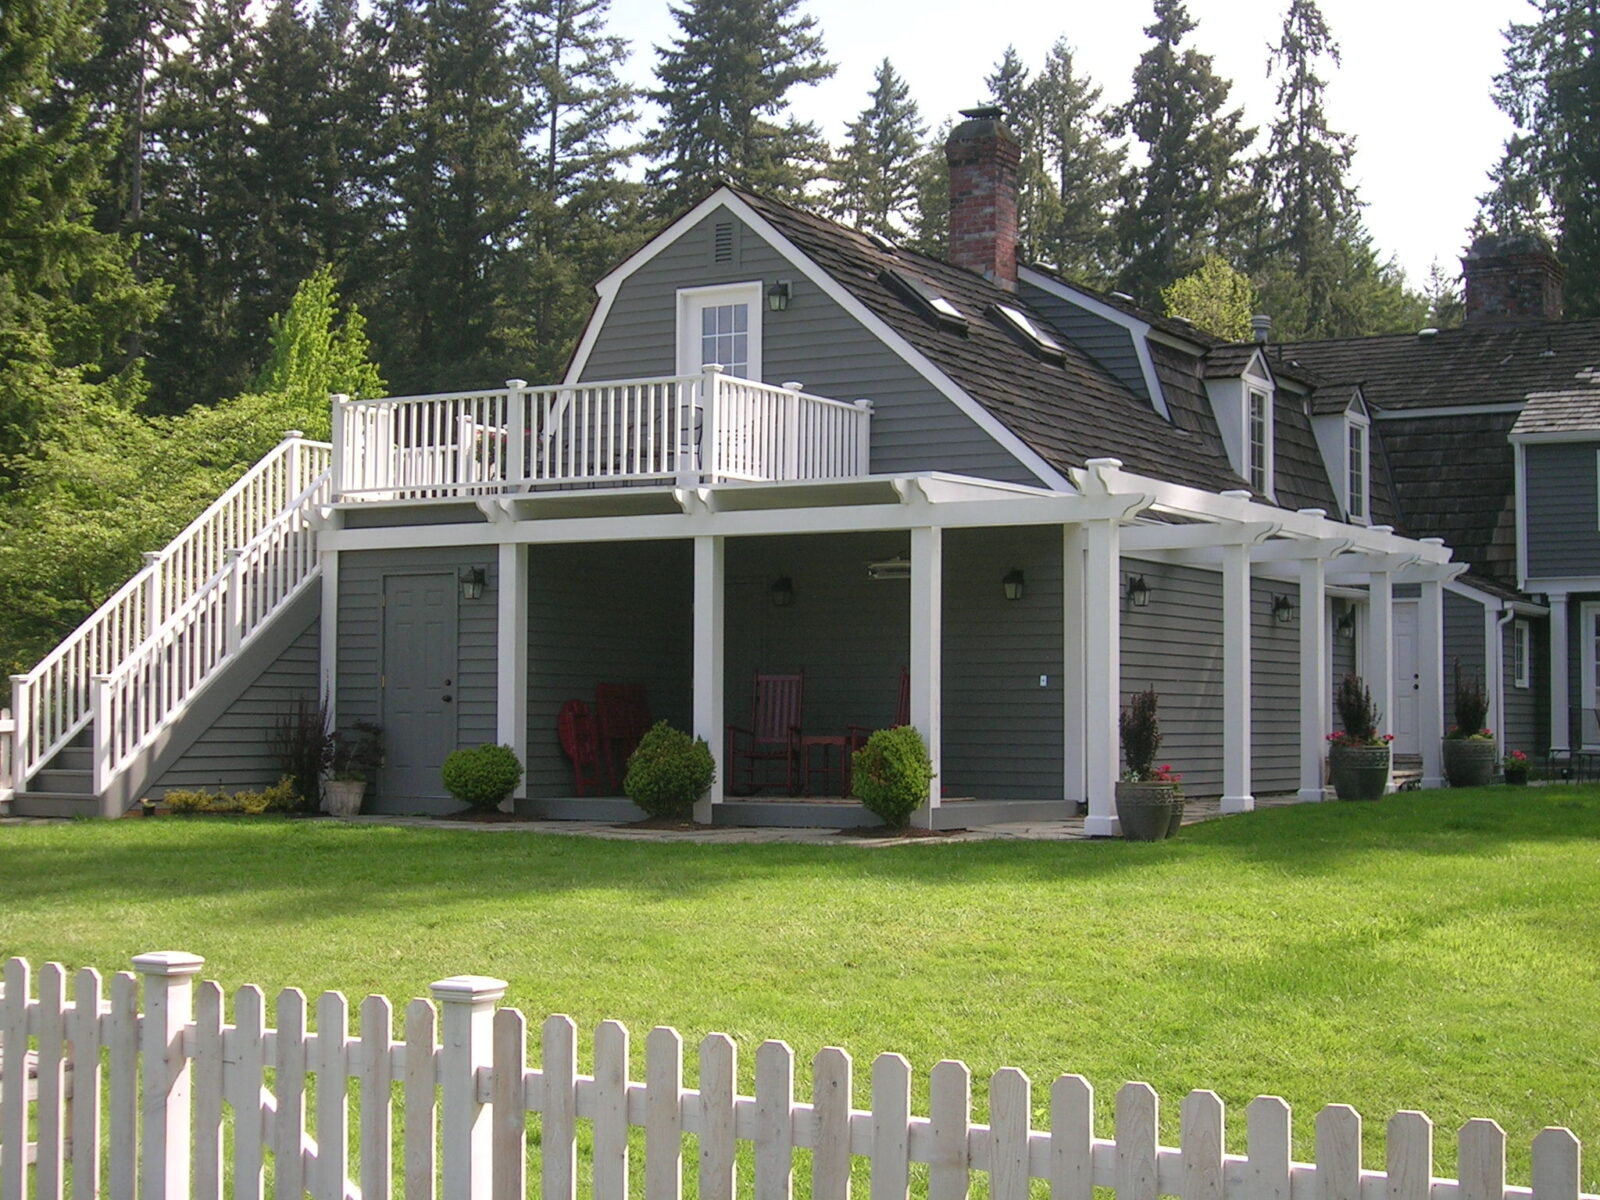 Large gray home with with deck on the back of the house